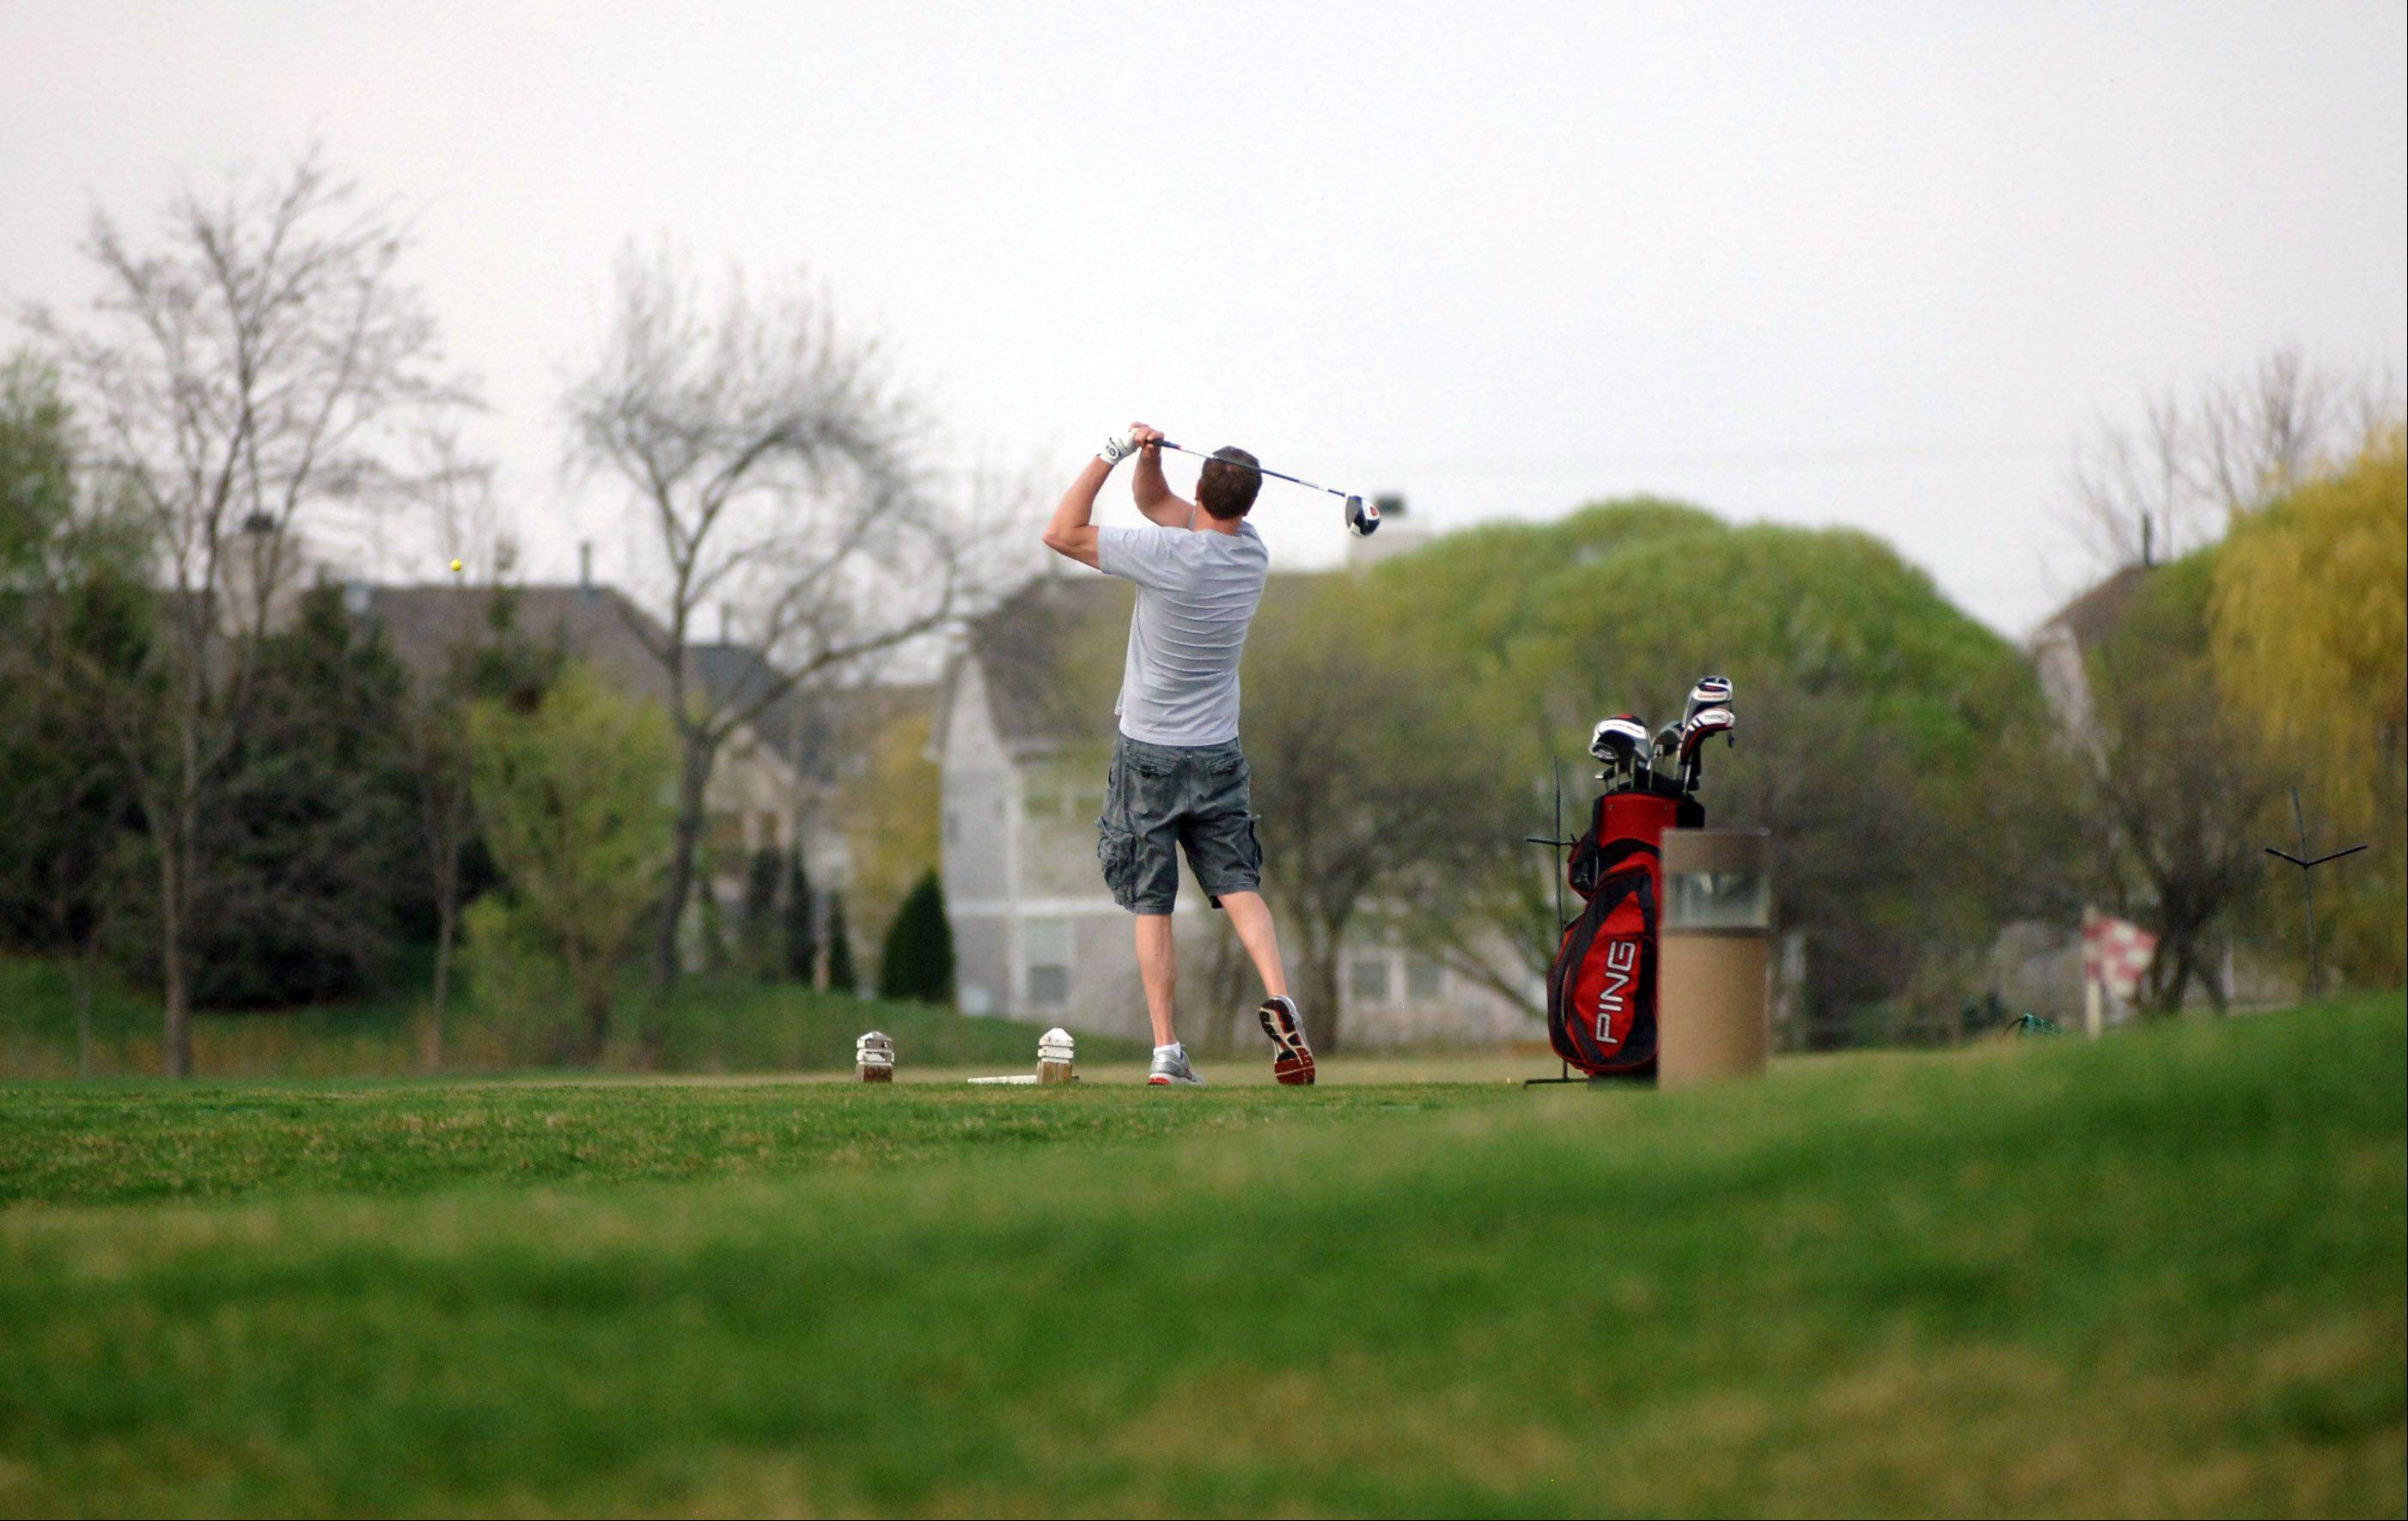 Management company upbeat about Gurnee golf course